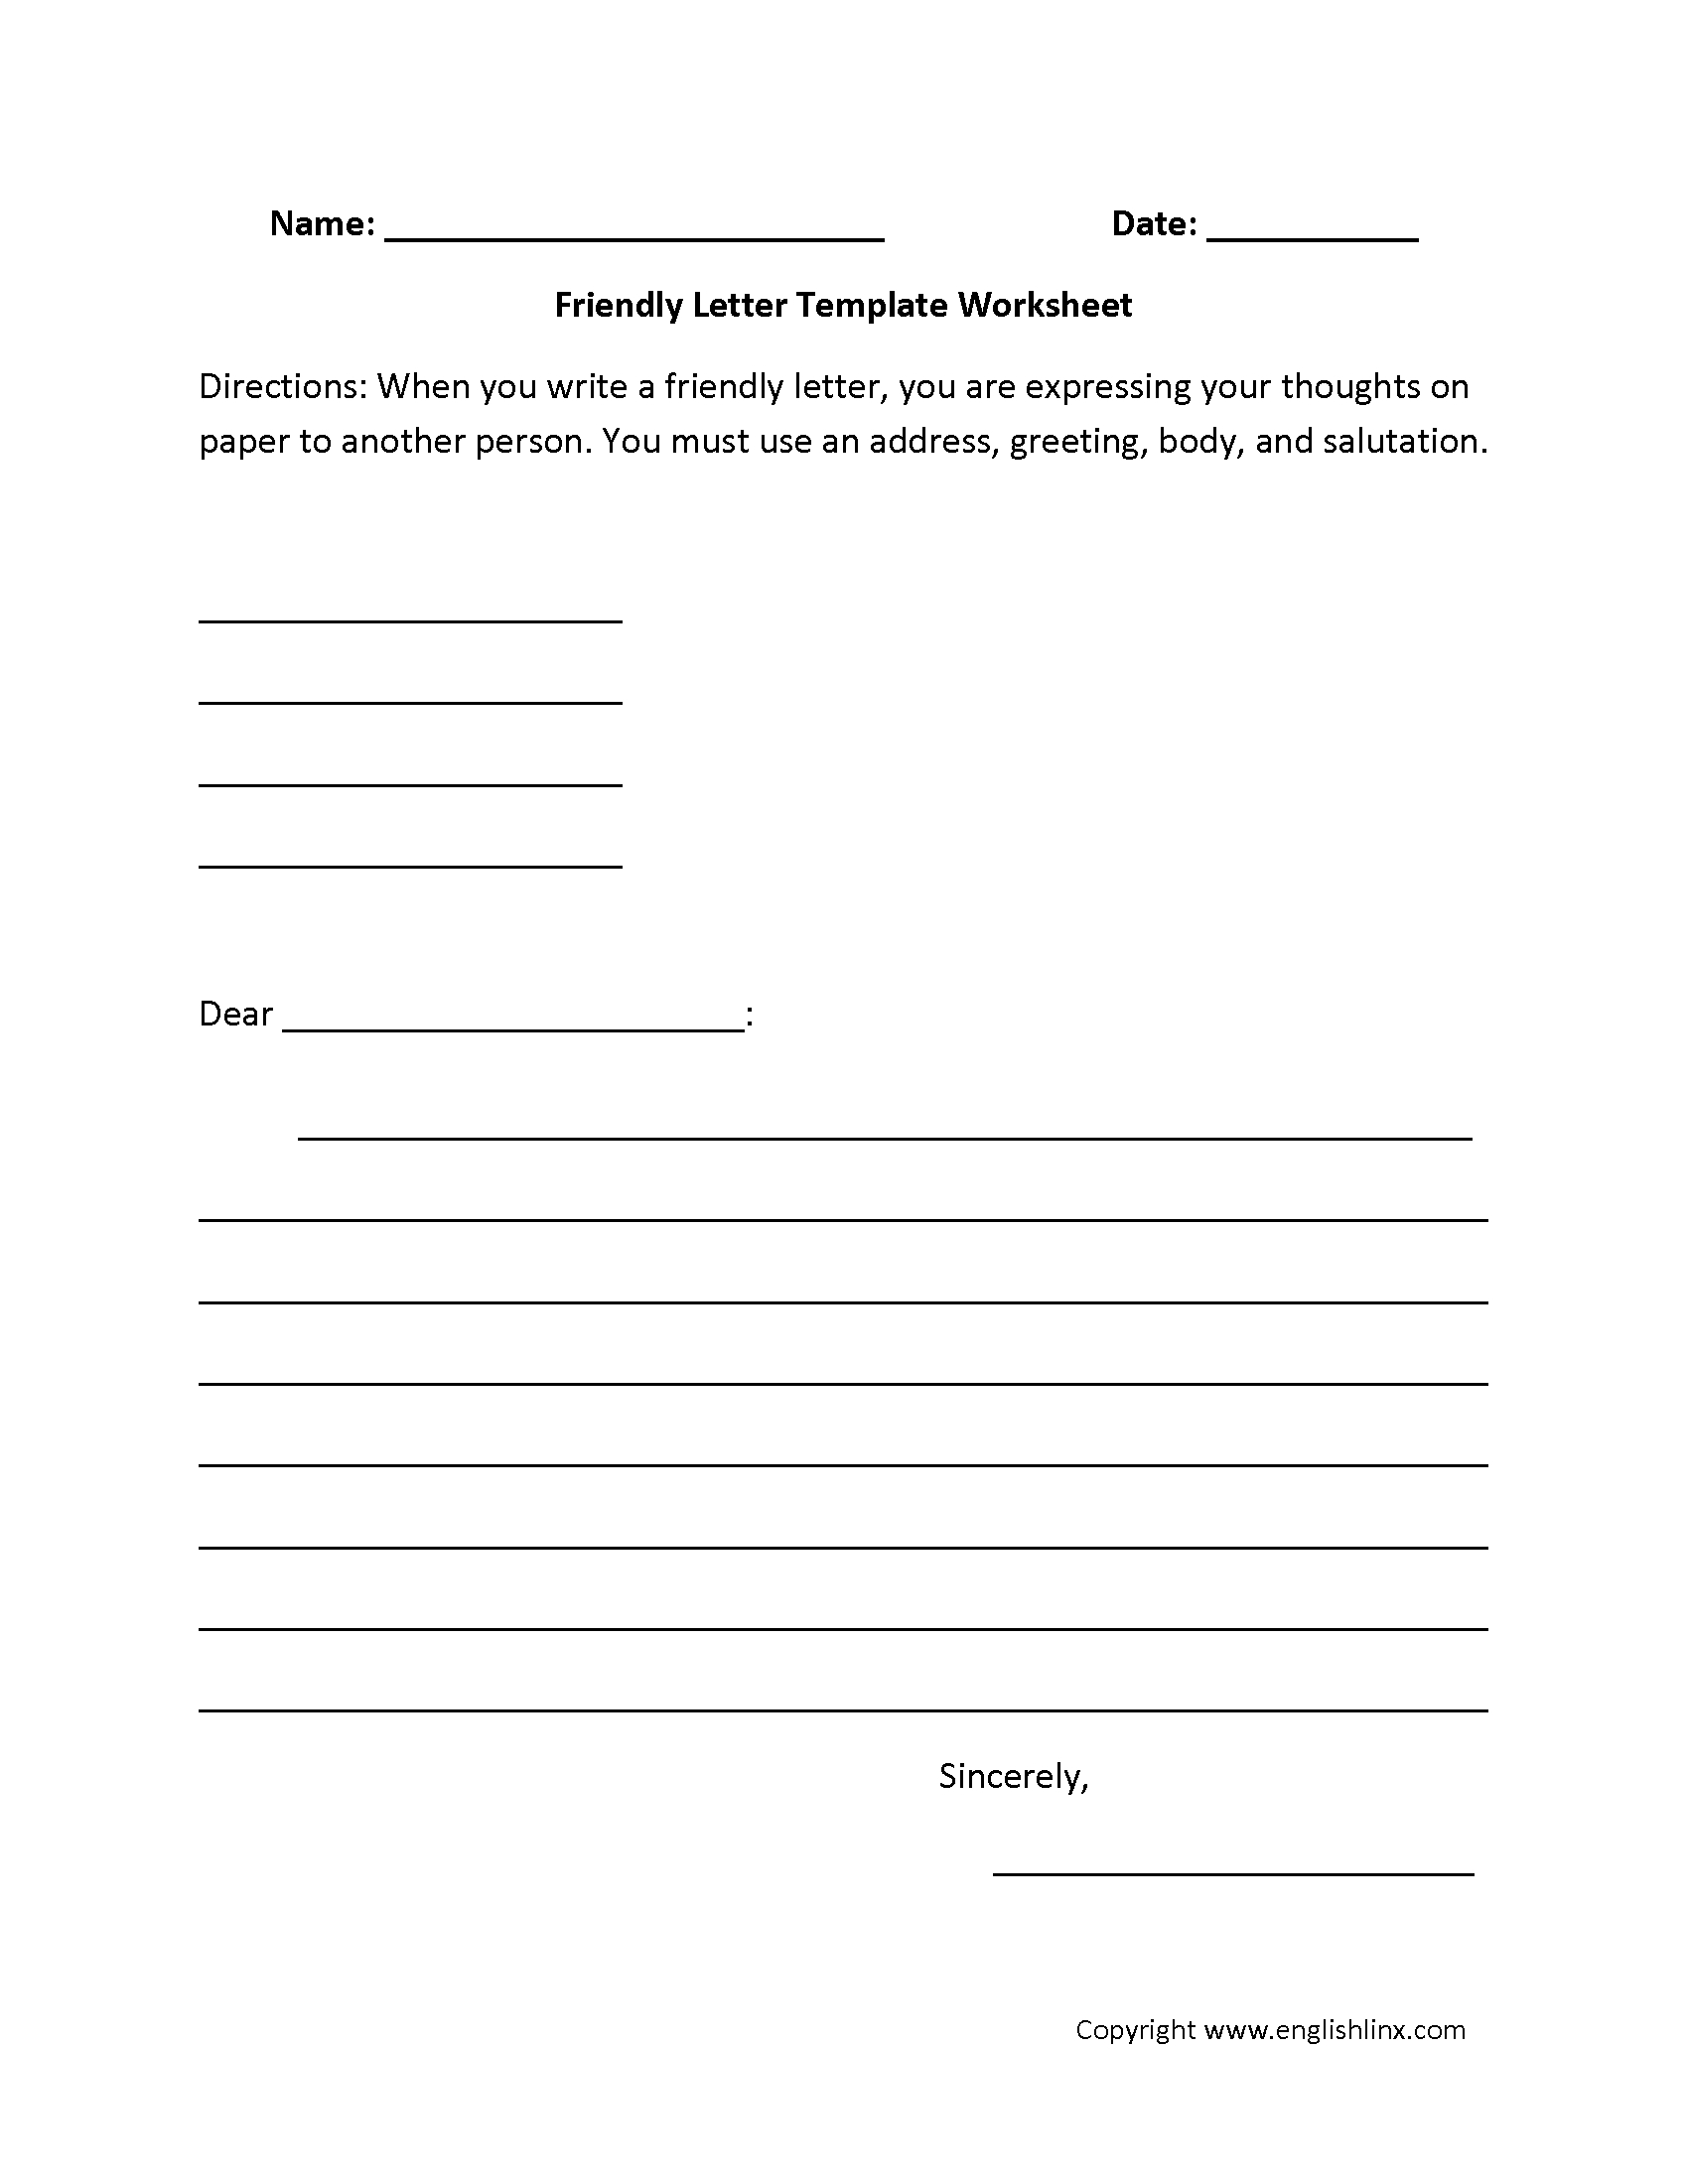 Writing Worksheets | Letter Writing Worksheets - 6Th Grade Writing Worksheets Printable Free